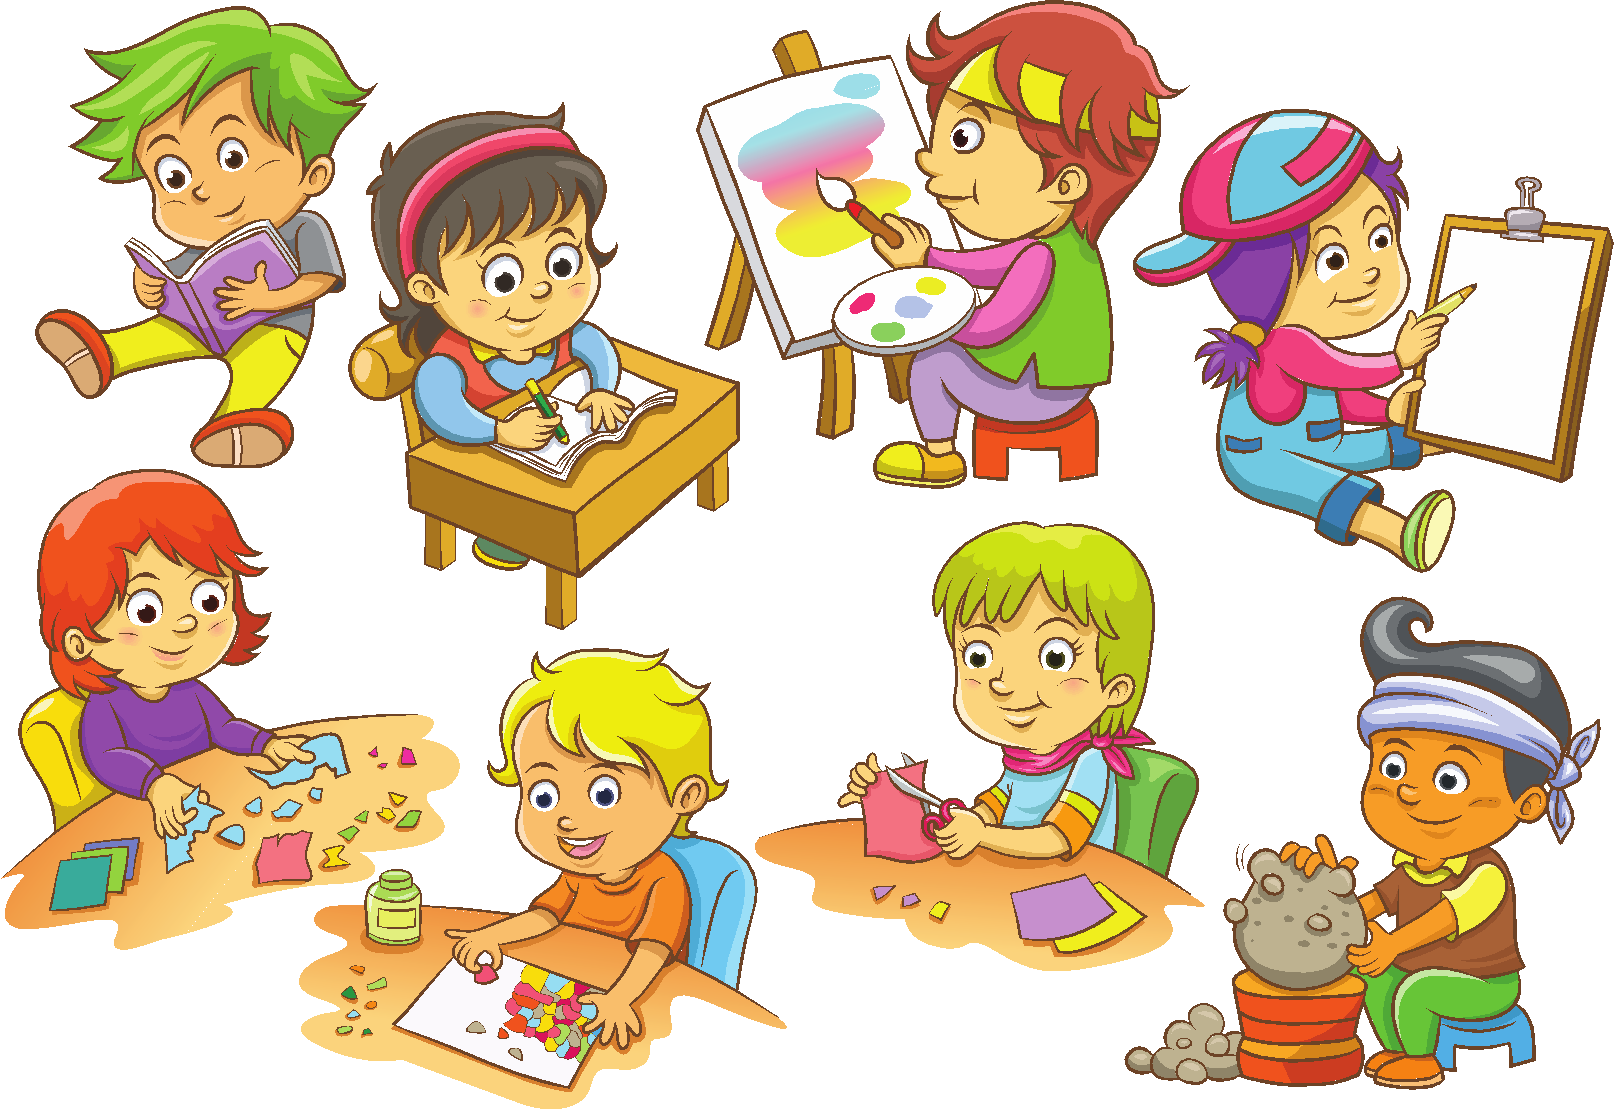 Kid having fun in the sun clipart black and white library 50 Fun Activities For Kids To Do @ Home In Summer - Golfedge black and white library